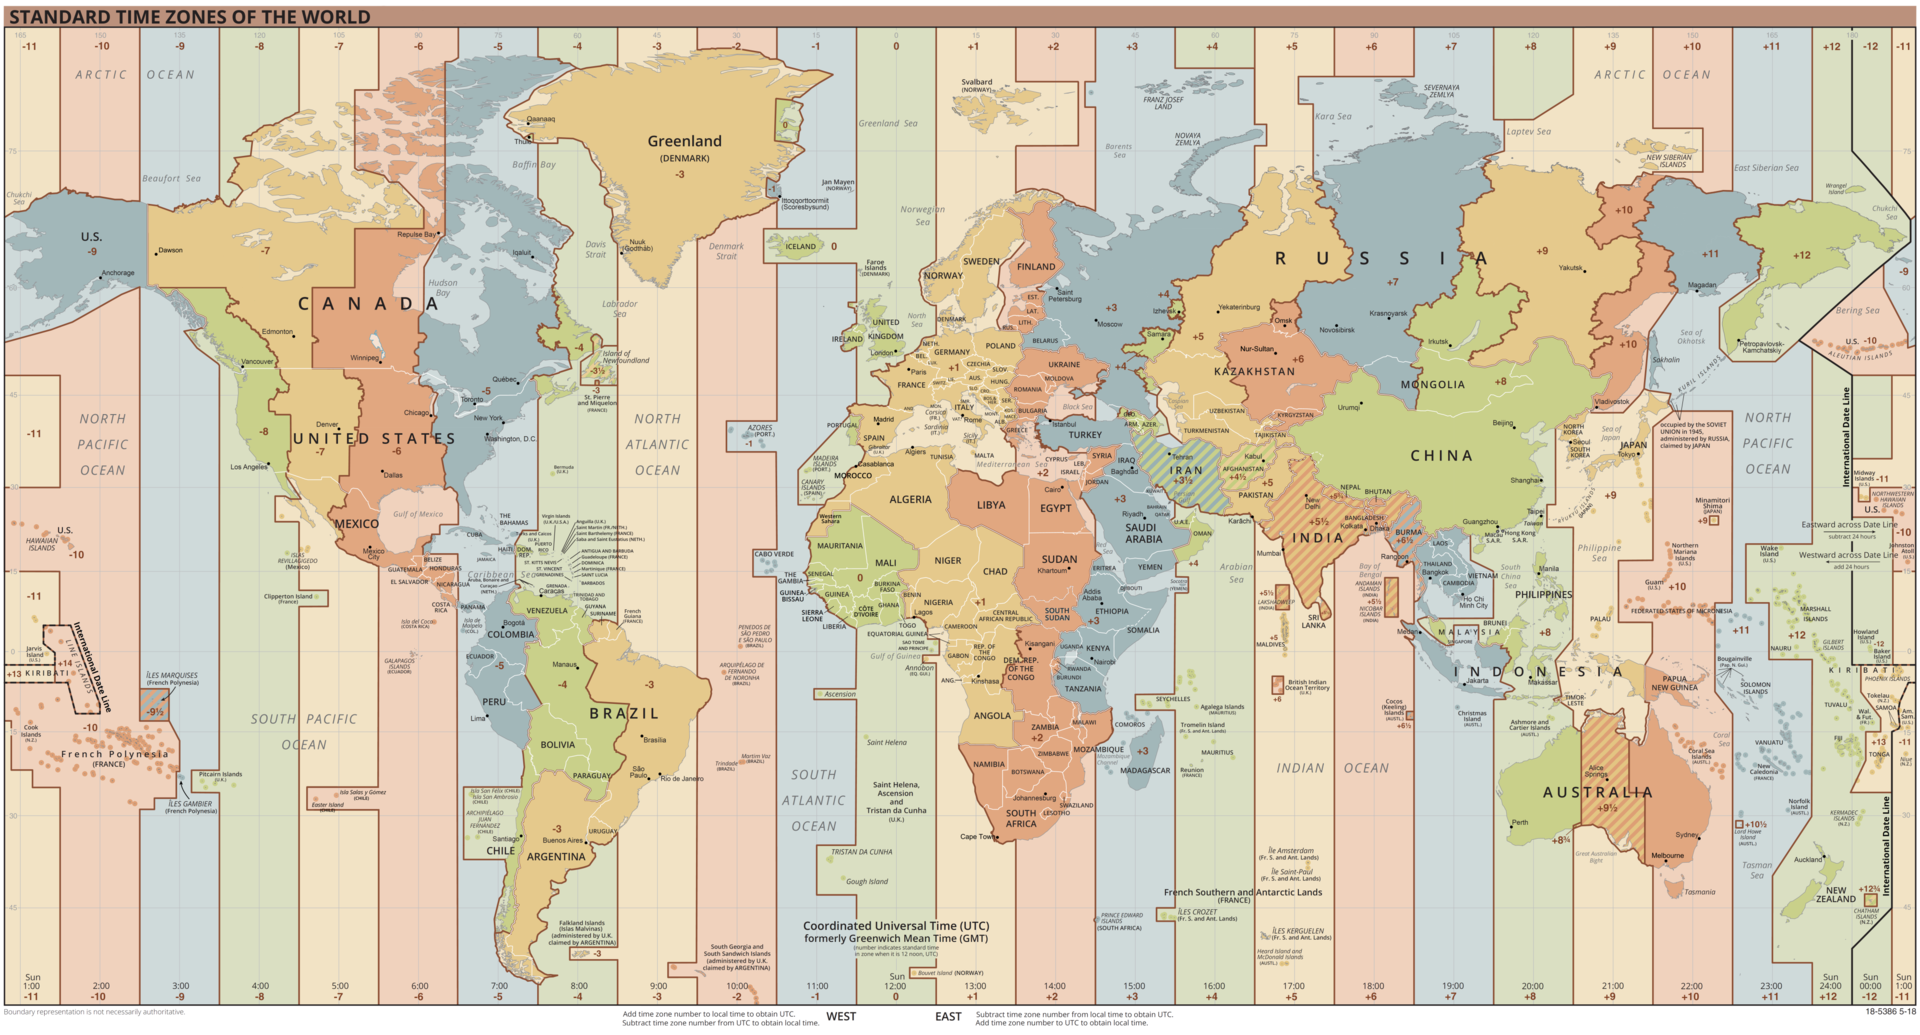 1920px-World_Time_Zones_Map.png